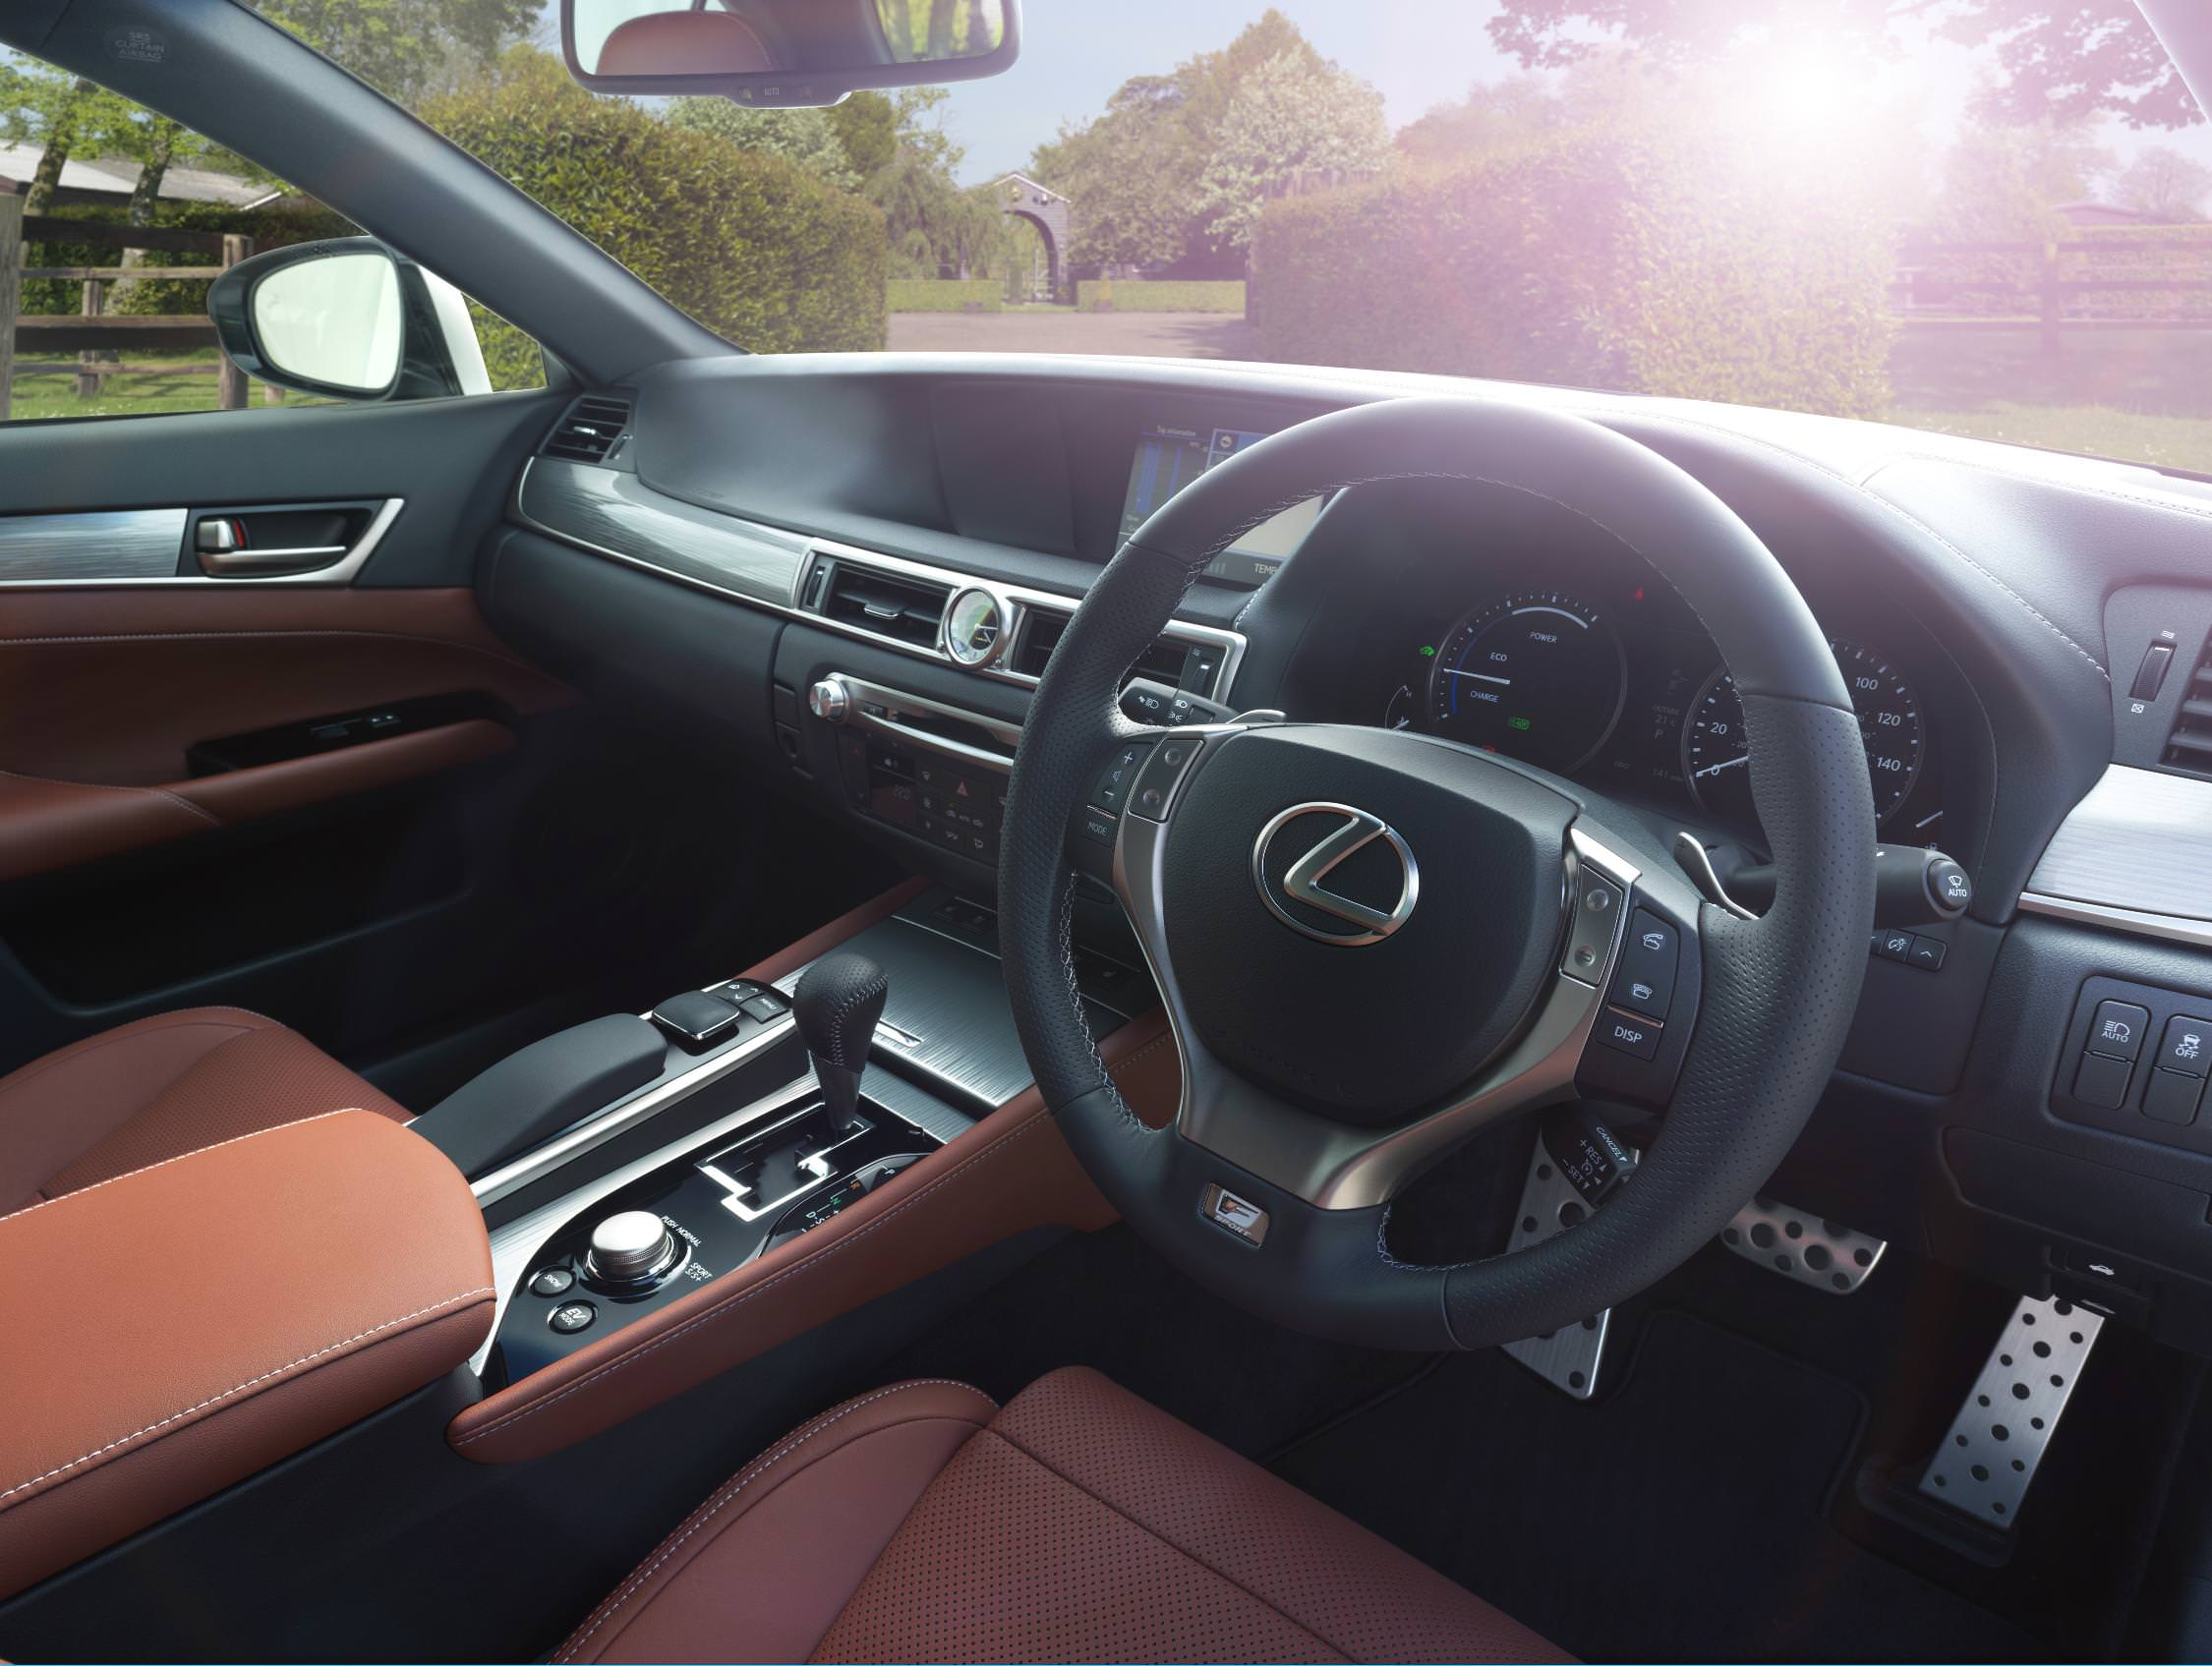 image of a lexus car interior